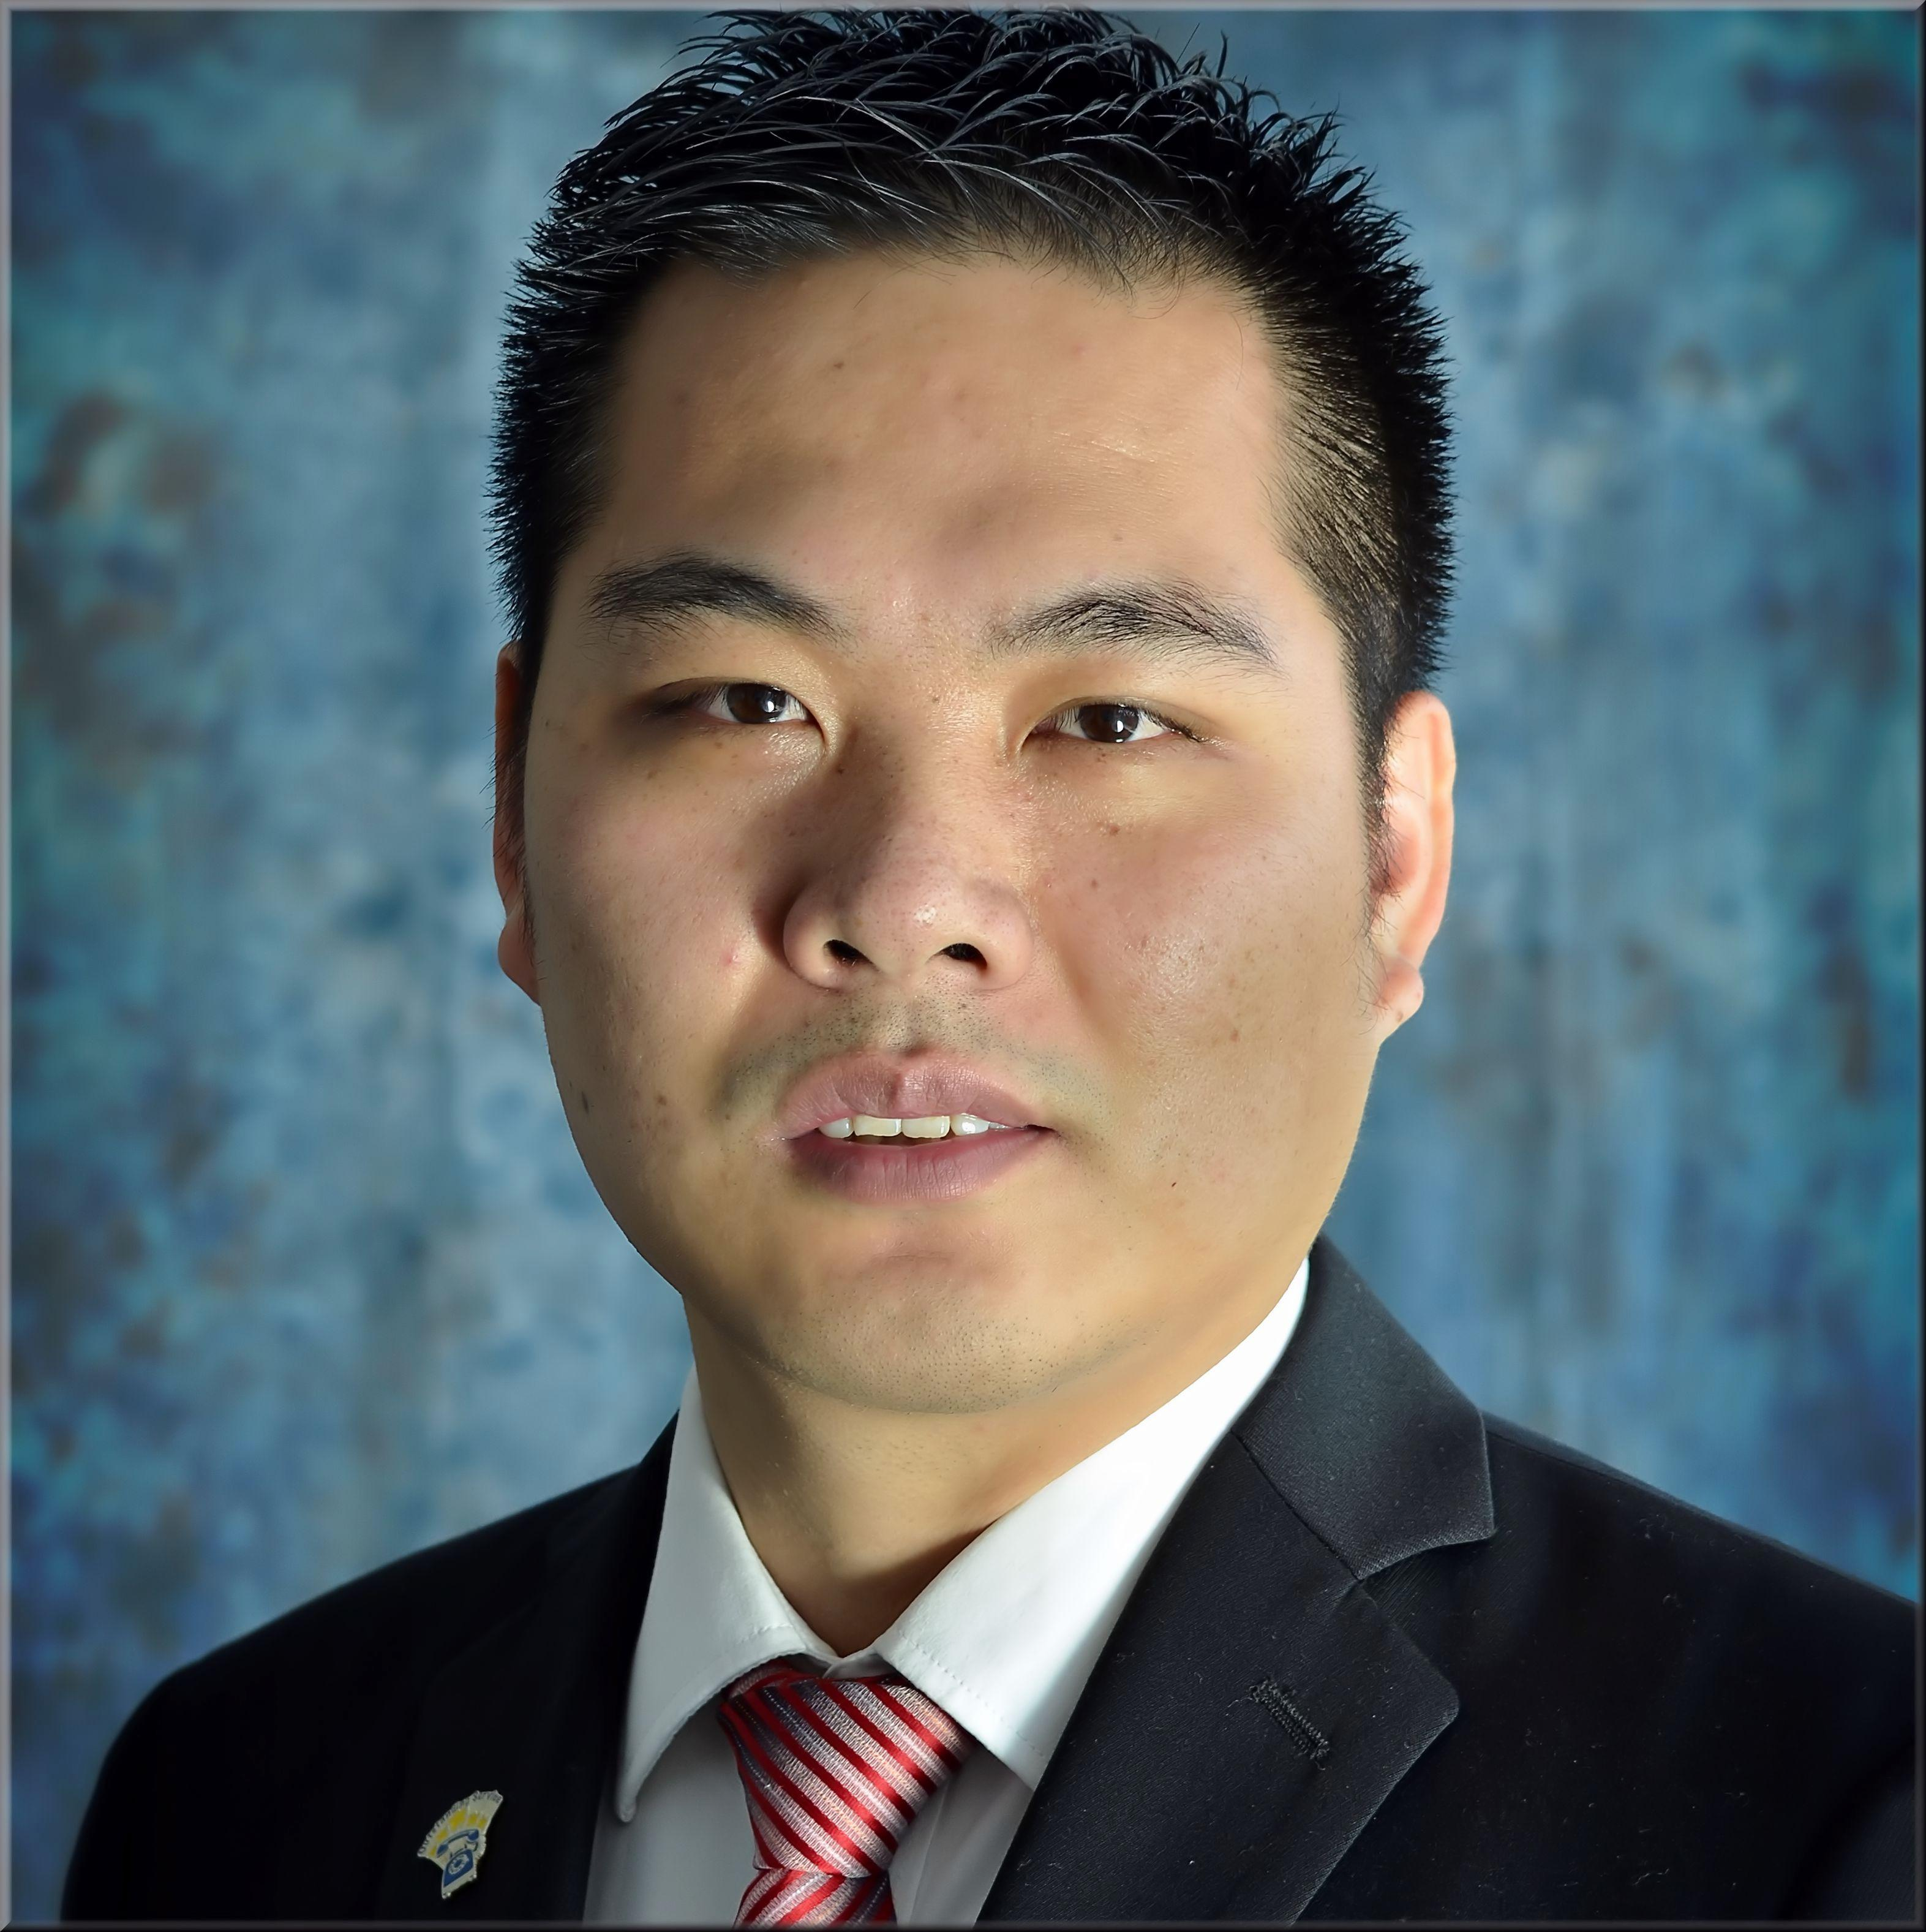 NELSON D. YANG  Your Financial Professional & Insurance Agent